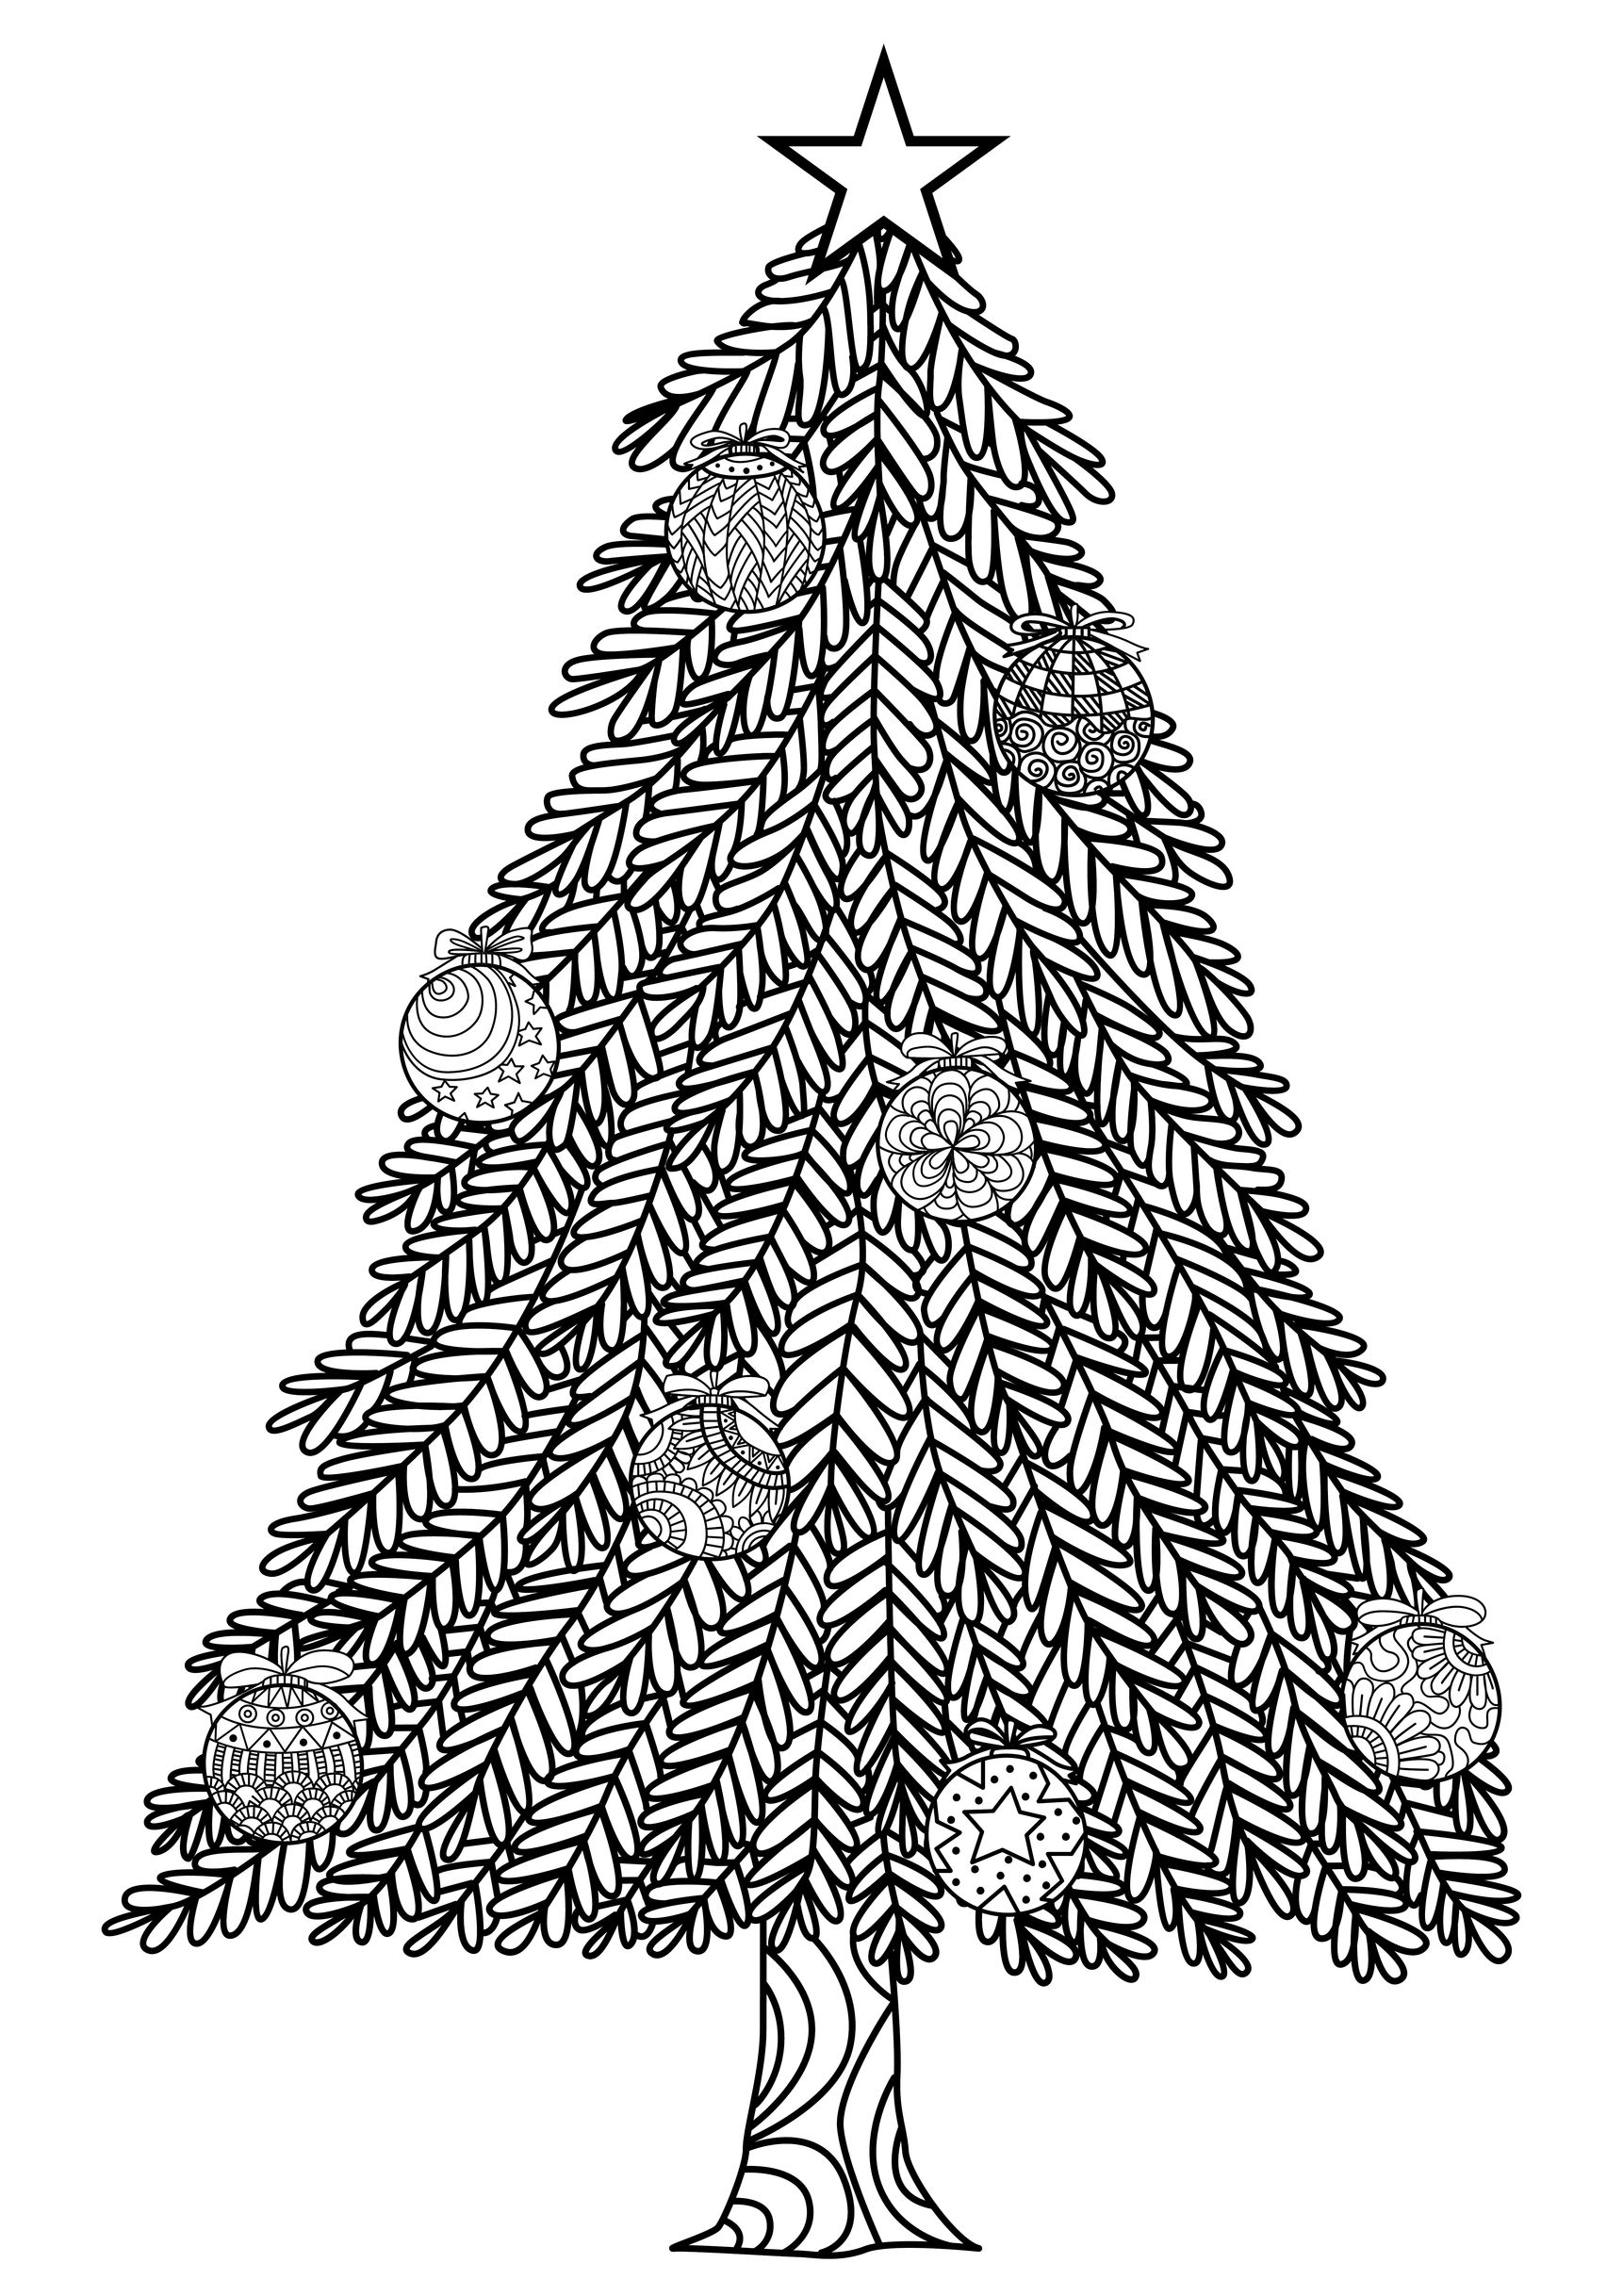 Christmas Tree Coloring Page With Pages For Adults Free Books